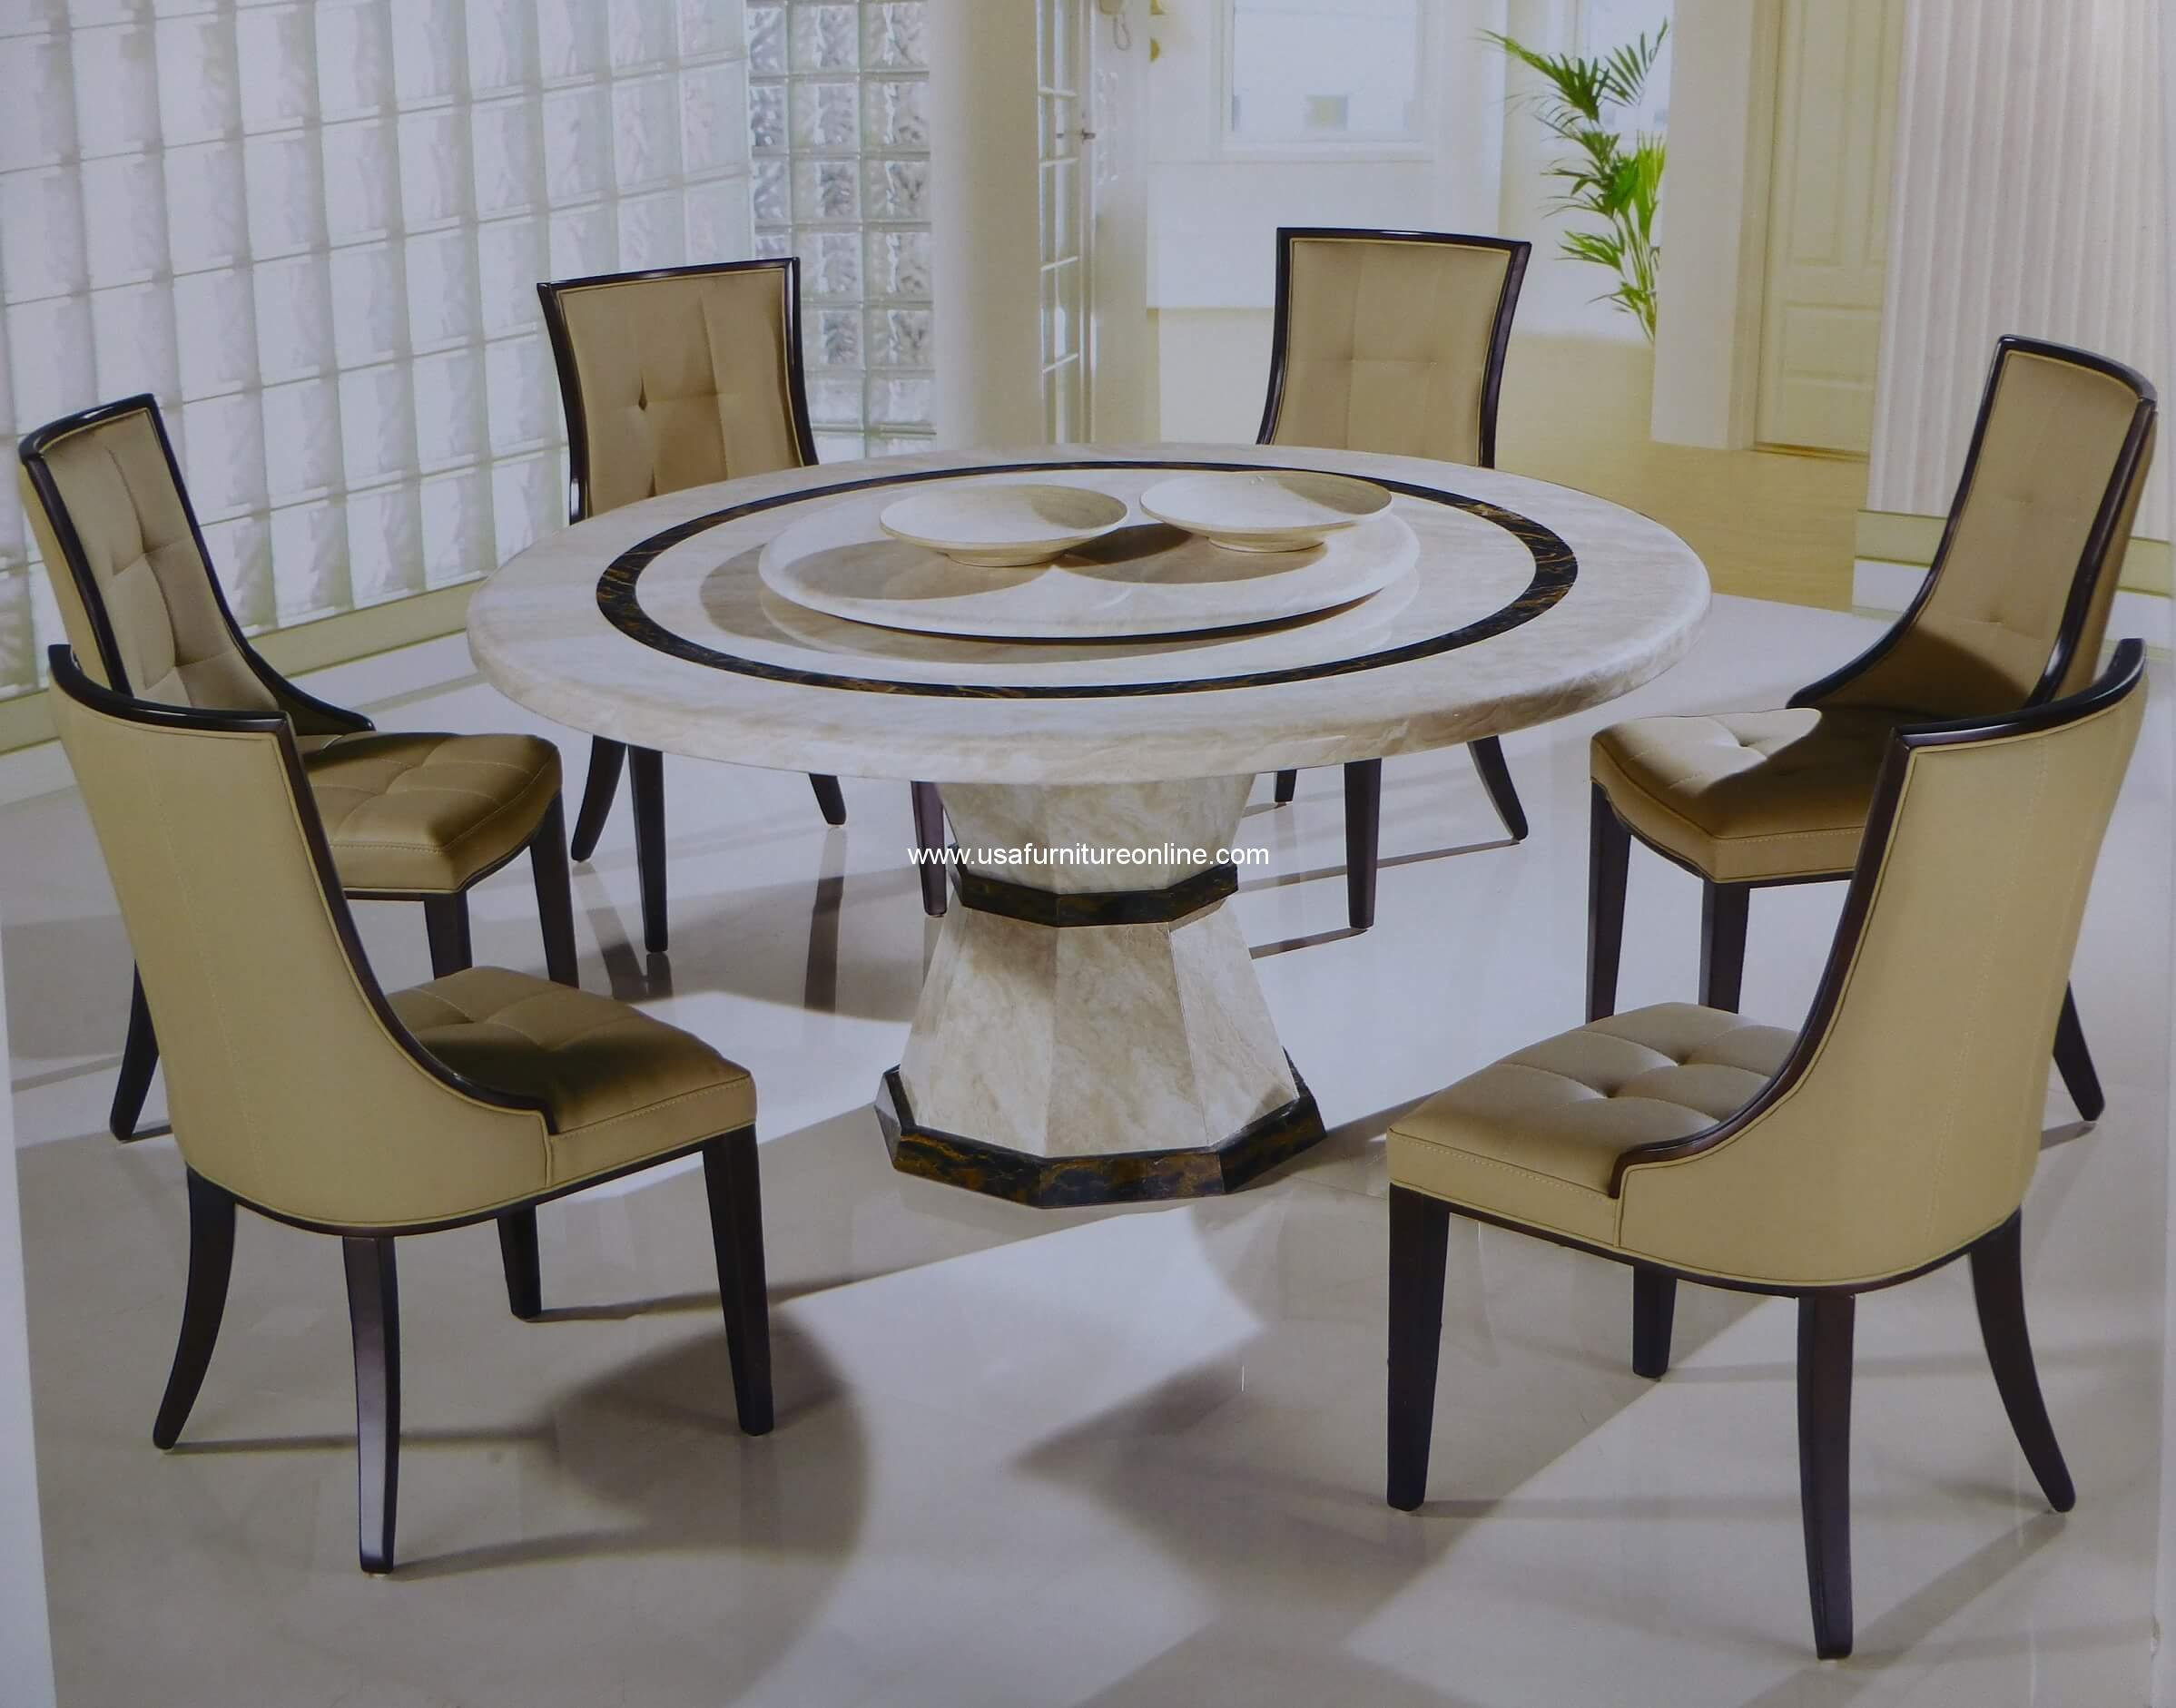 Canberra Italian Marble 7 Piece Round Dining Set Usa Furniture Online